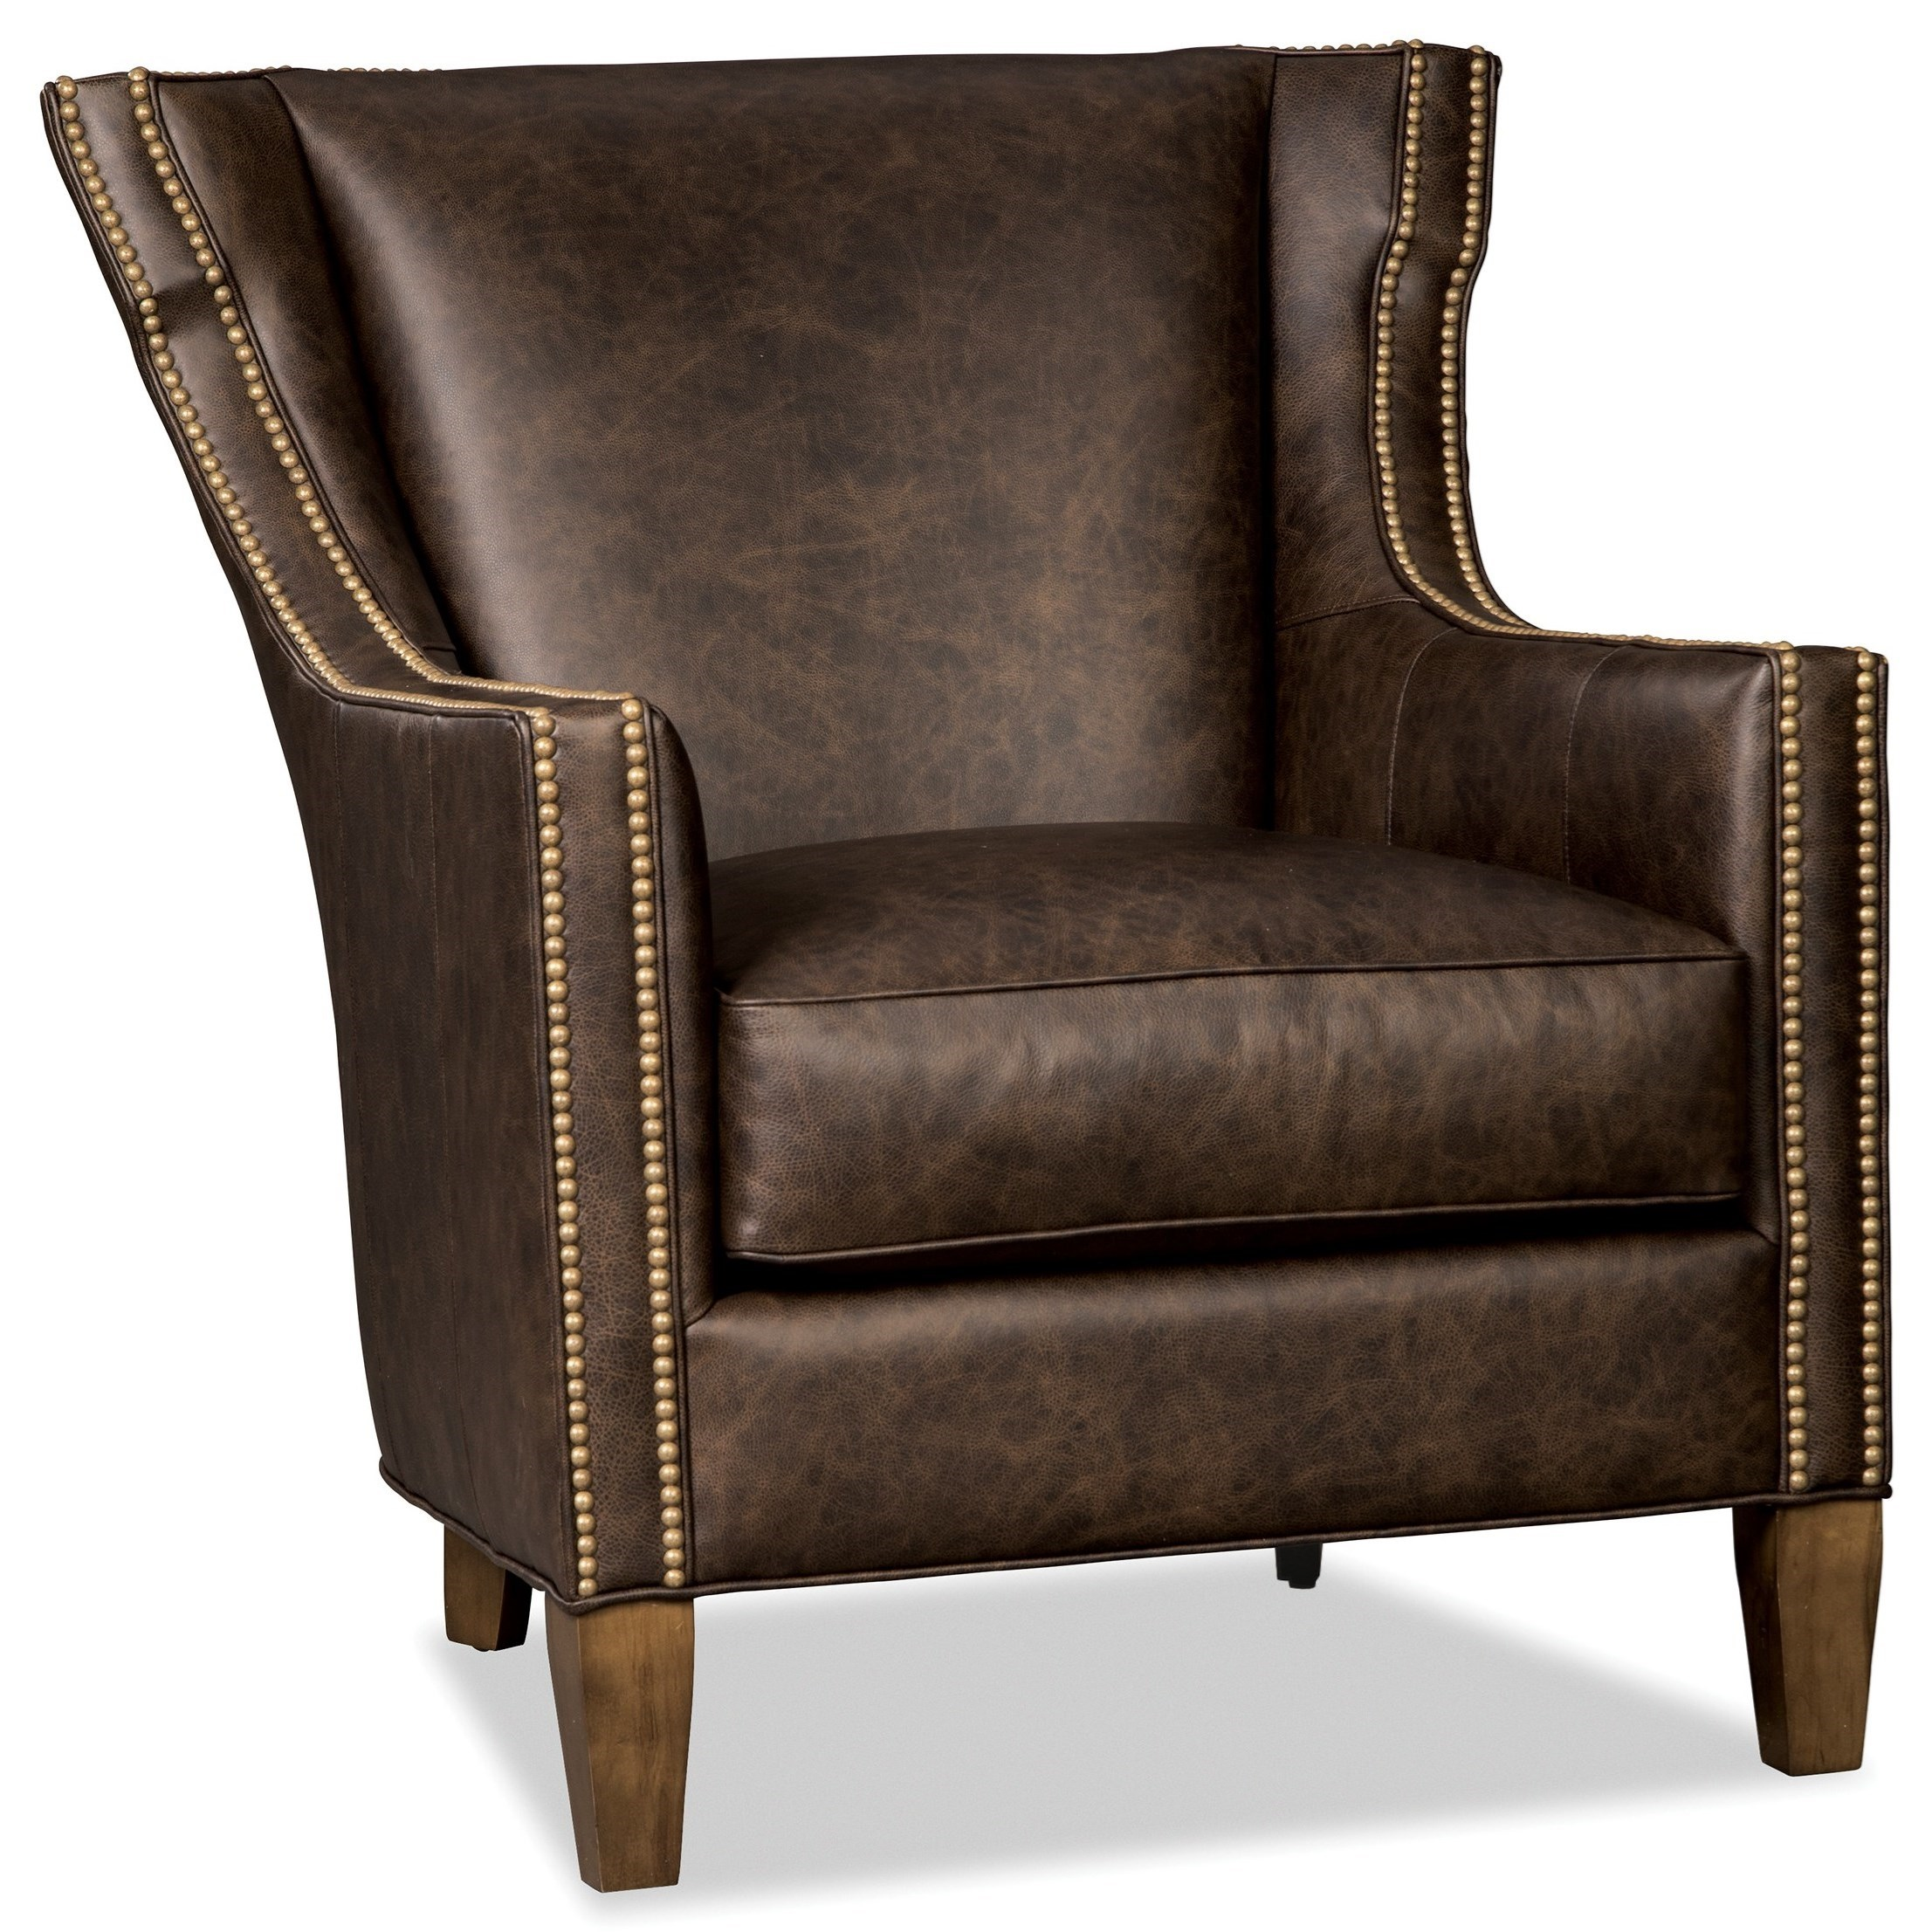 L035710 Chair by Hickory Craft at Godby Home Furnishings